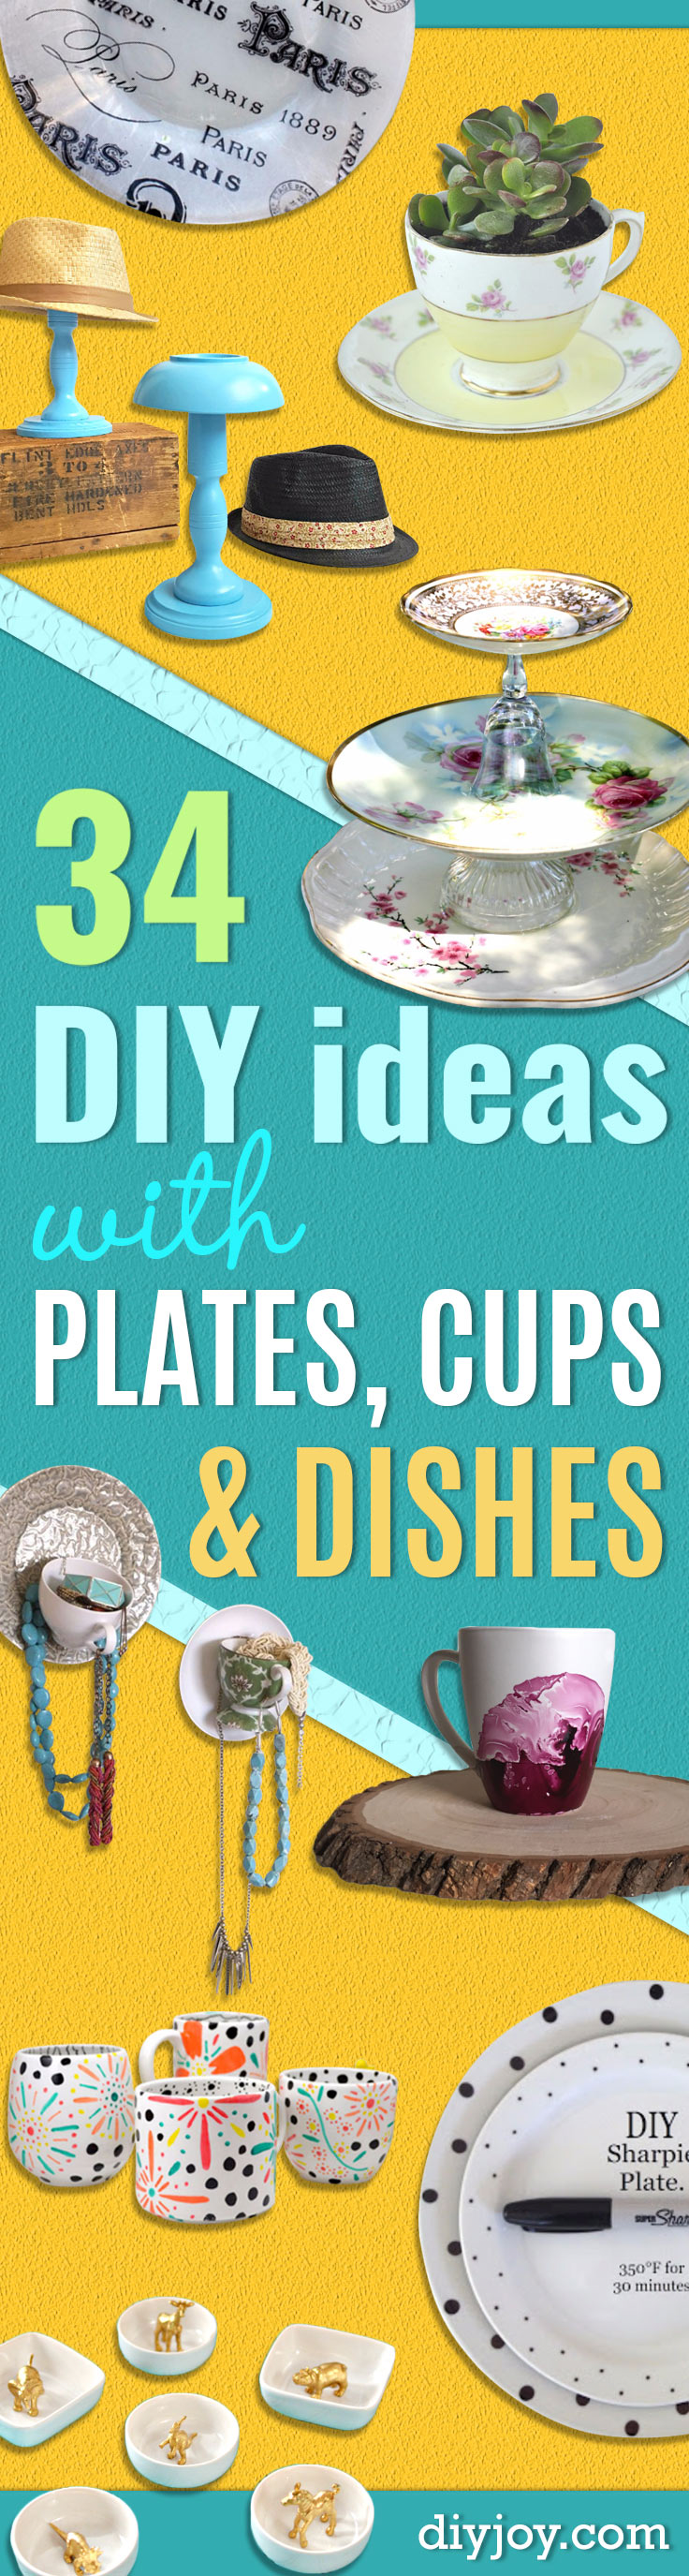 DIY Projects With Old Plates and Dishes -Creative Home Decor for Rustic, Vintage and Farmhouse Looks. Upcycle With These Best Crafts and Project Tutorials #diy #crafts